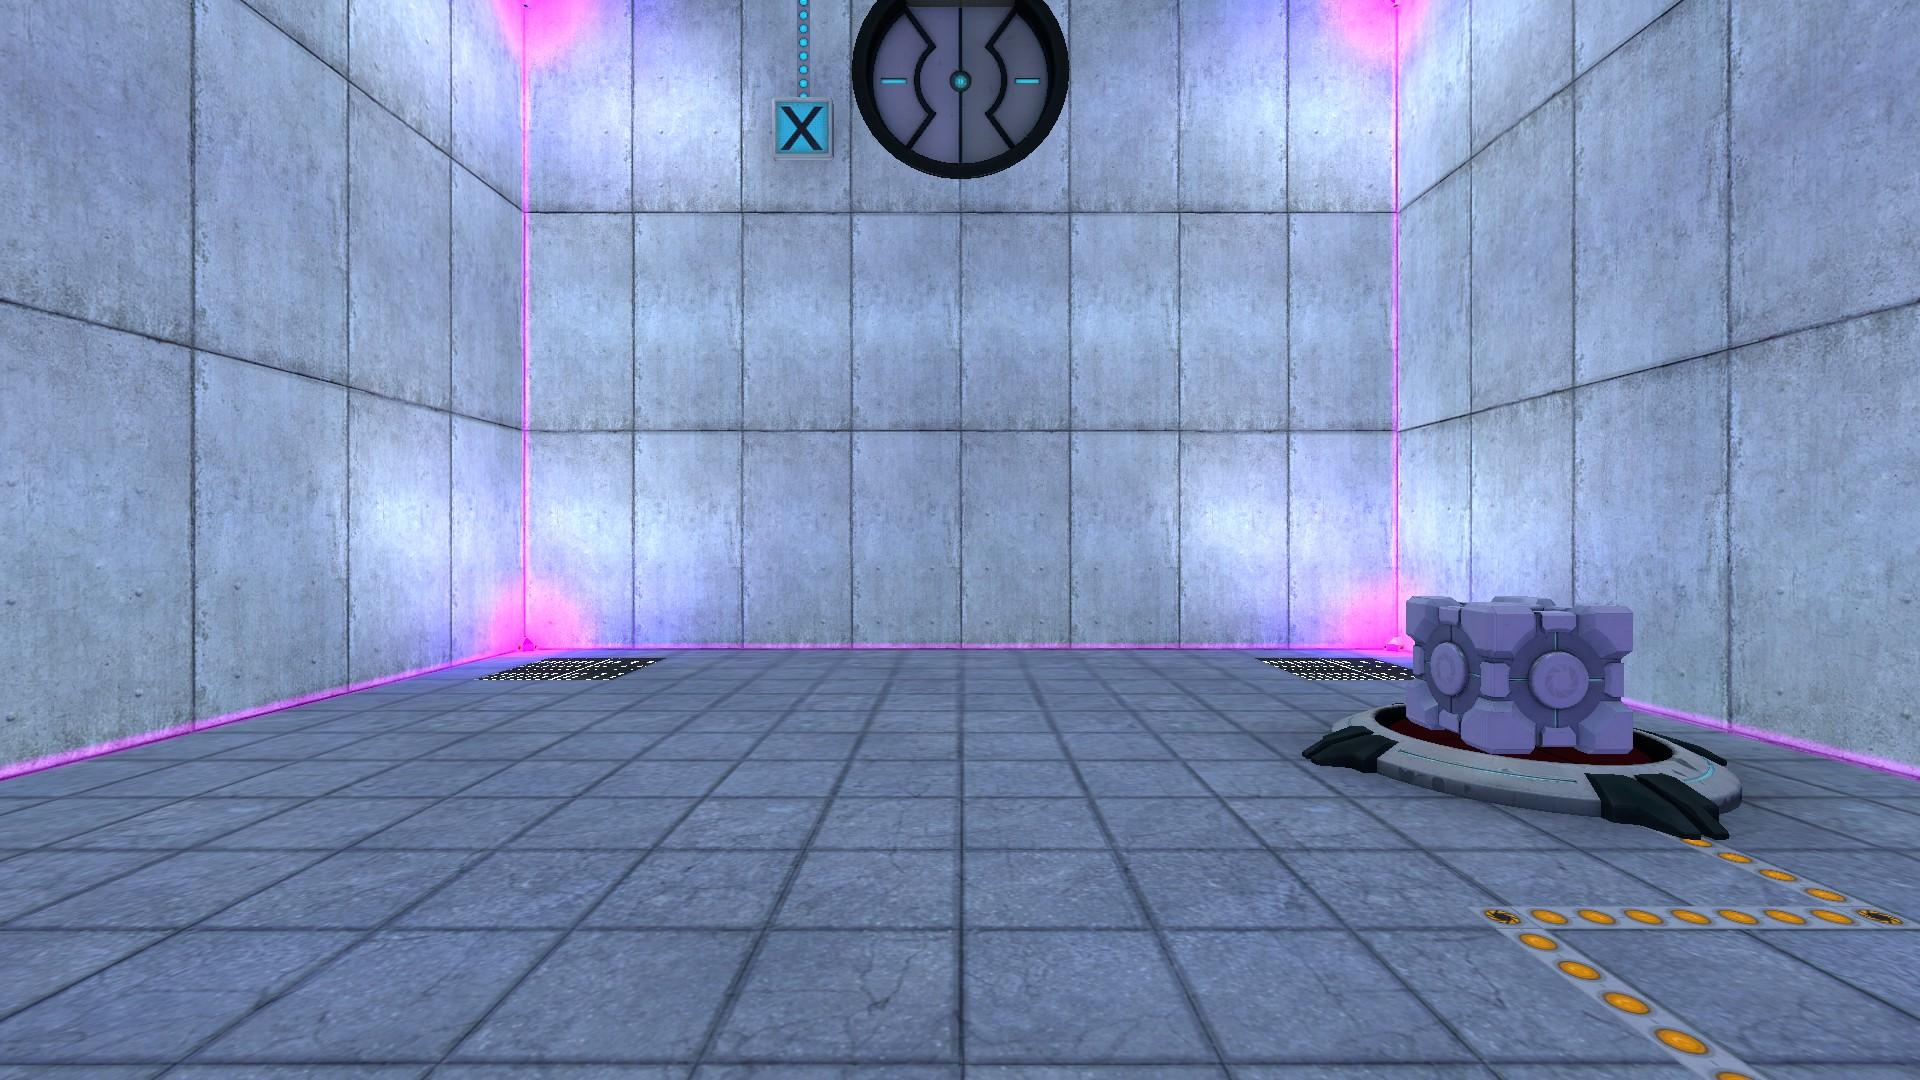 The first room has a button on the floor, a button on the ceiling, and glowing gravity field emitters in the corners connected by glowing beams.